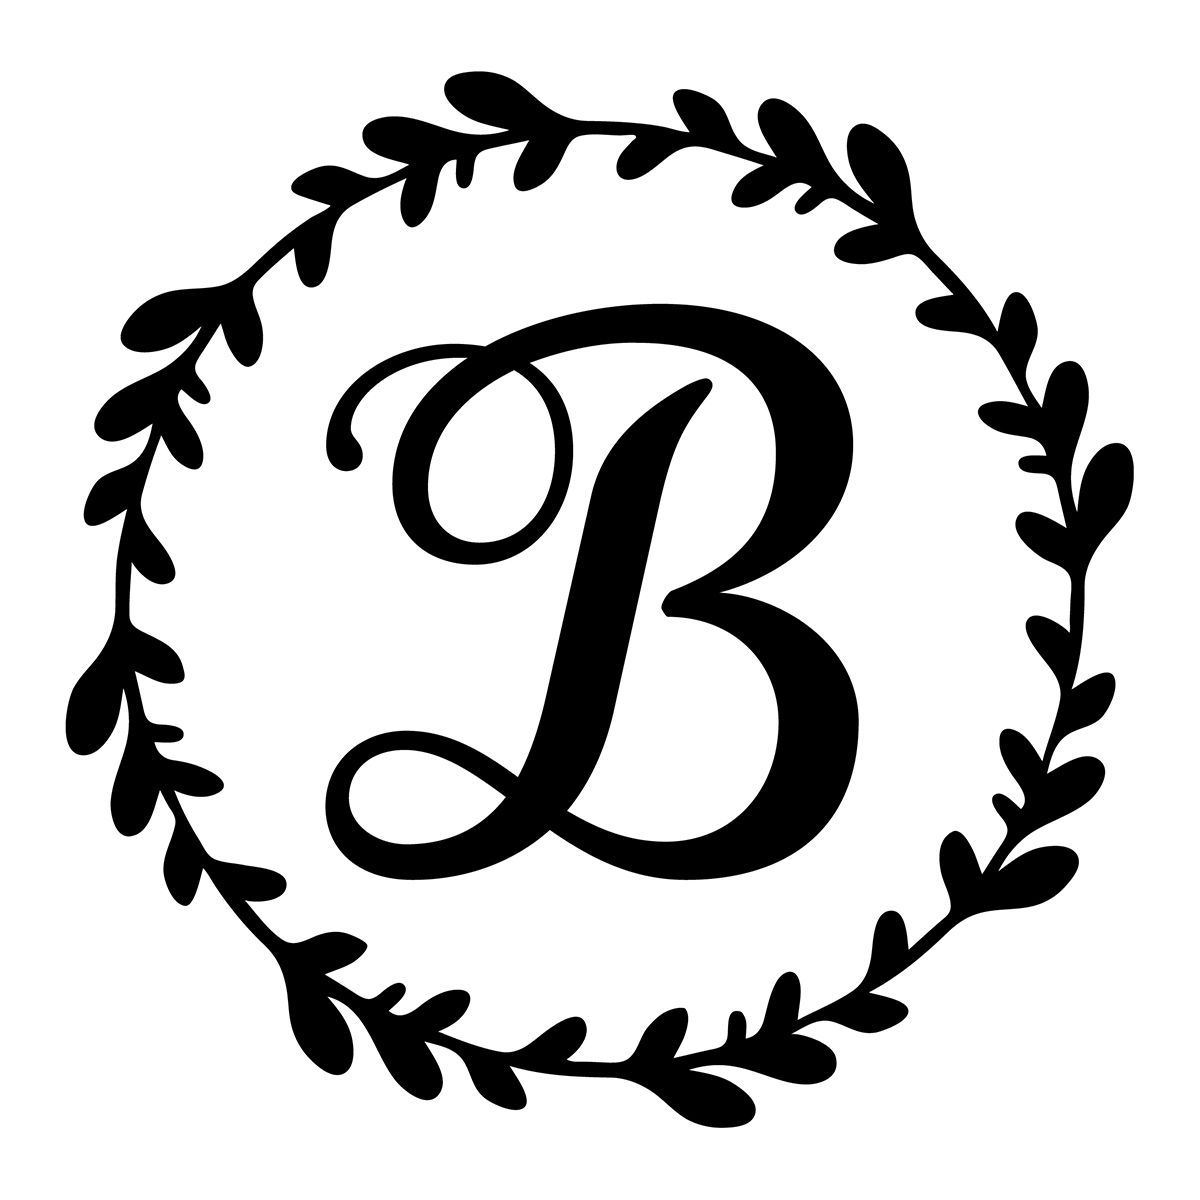 Monogram Initial Vine Wreath Vinyl Decal Rkcreative Llc